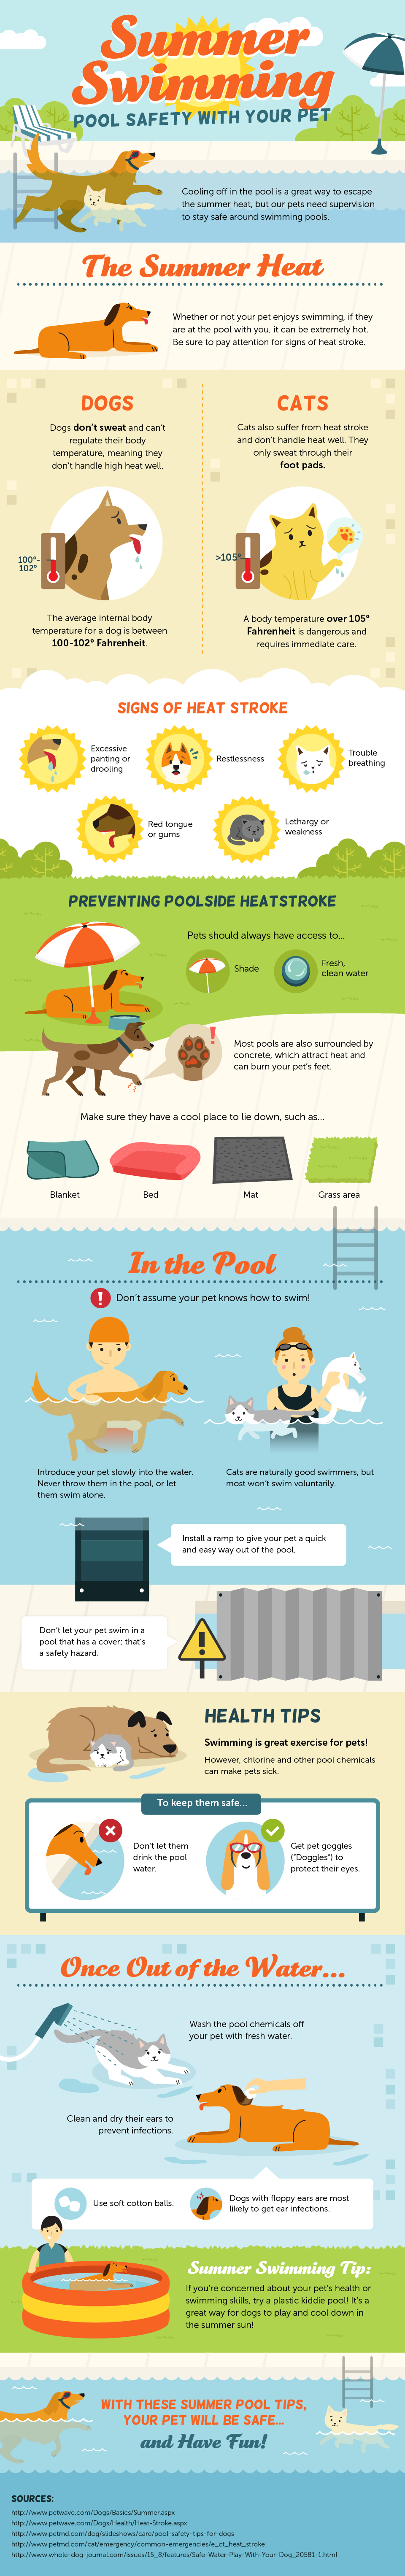 pets and swimming pool safety tips infographic